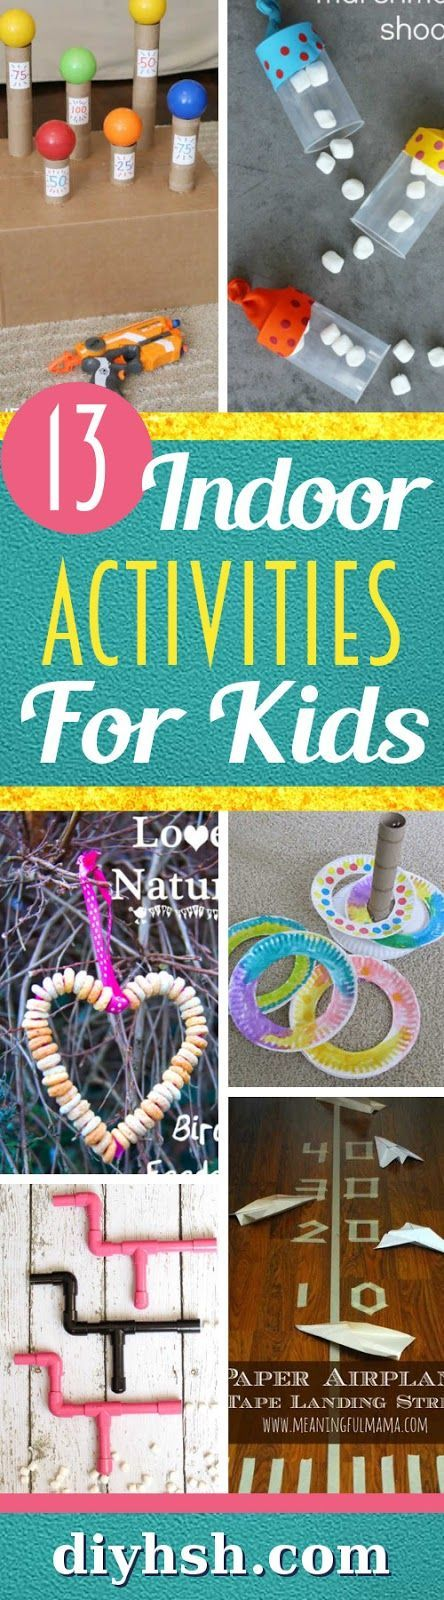 Indoor Activities For Kids Indoor activities for kids